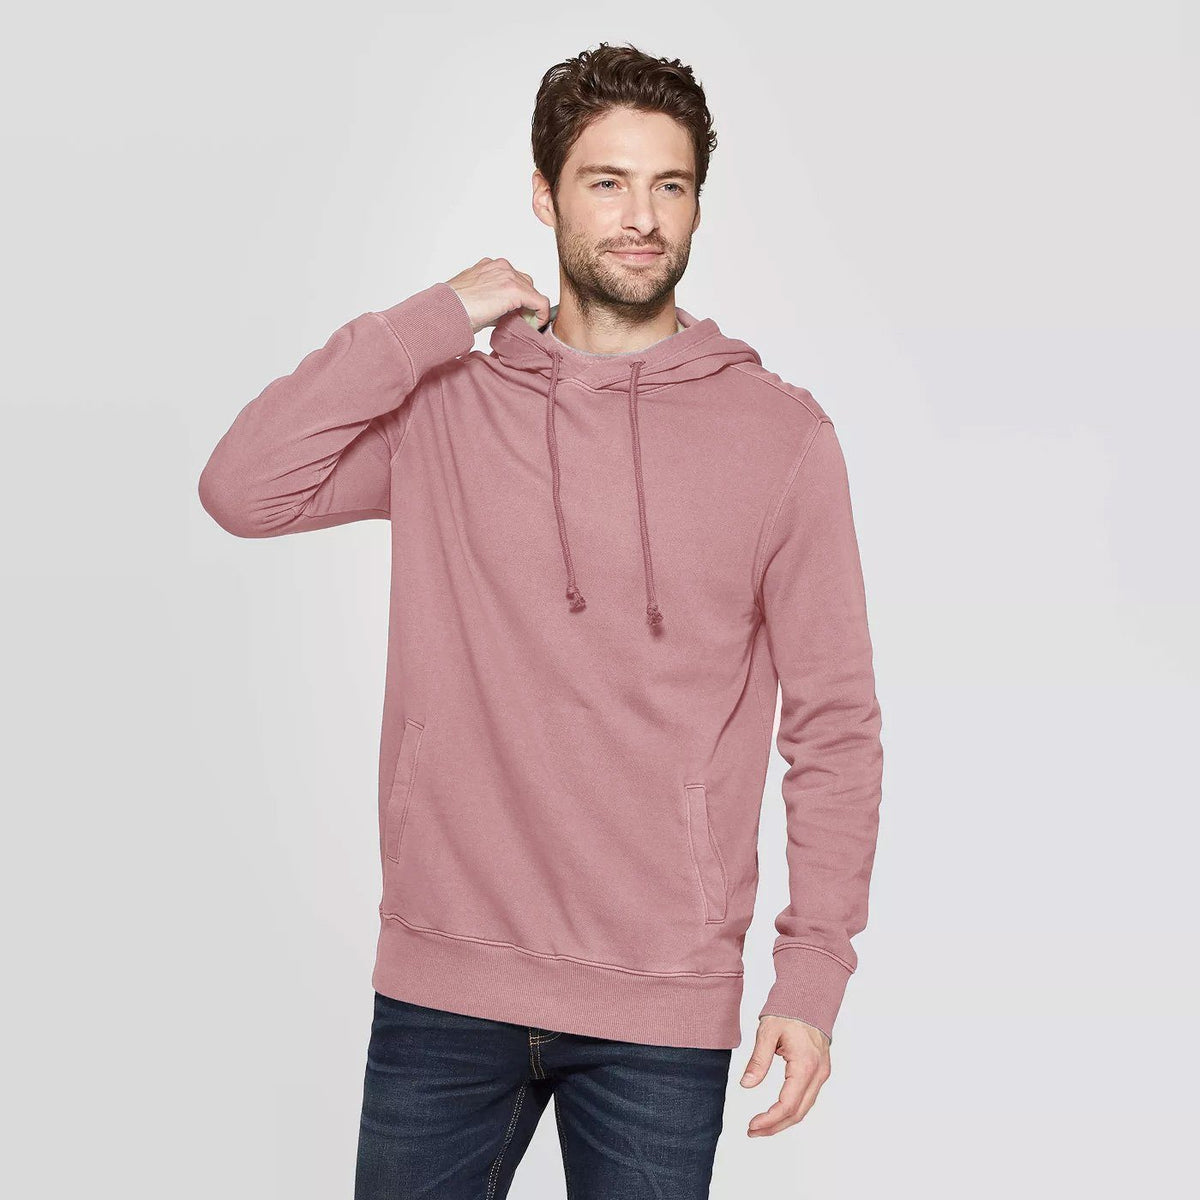 CR Men's 10-16A20 Terry Pullover Hoodie Men's Pullover Hoodie SRK Peach XS